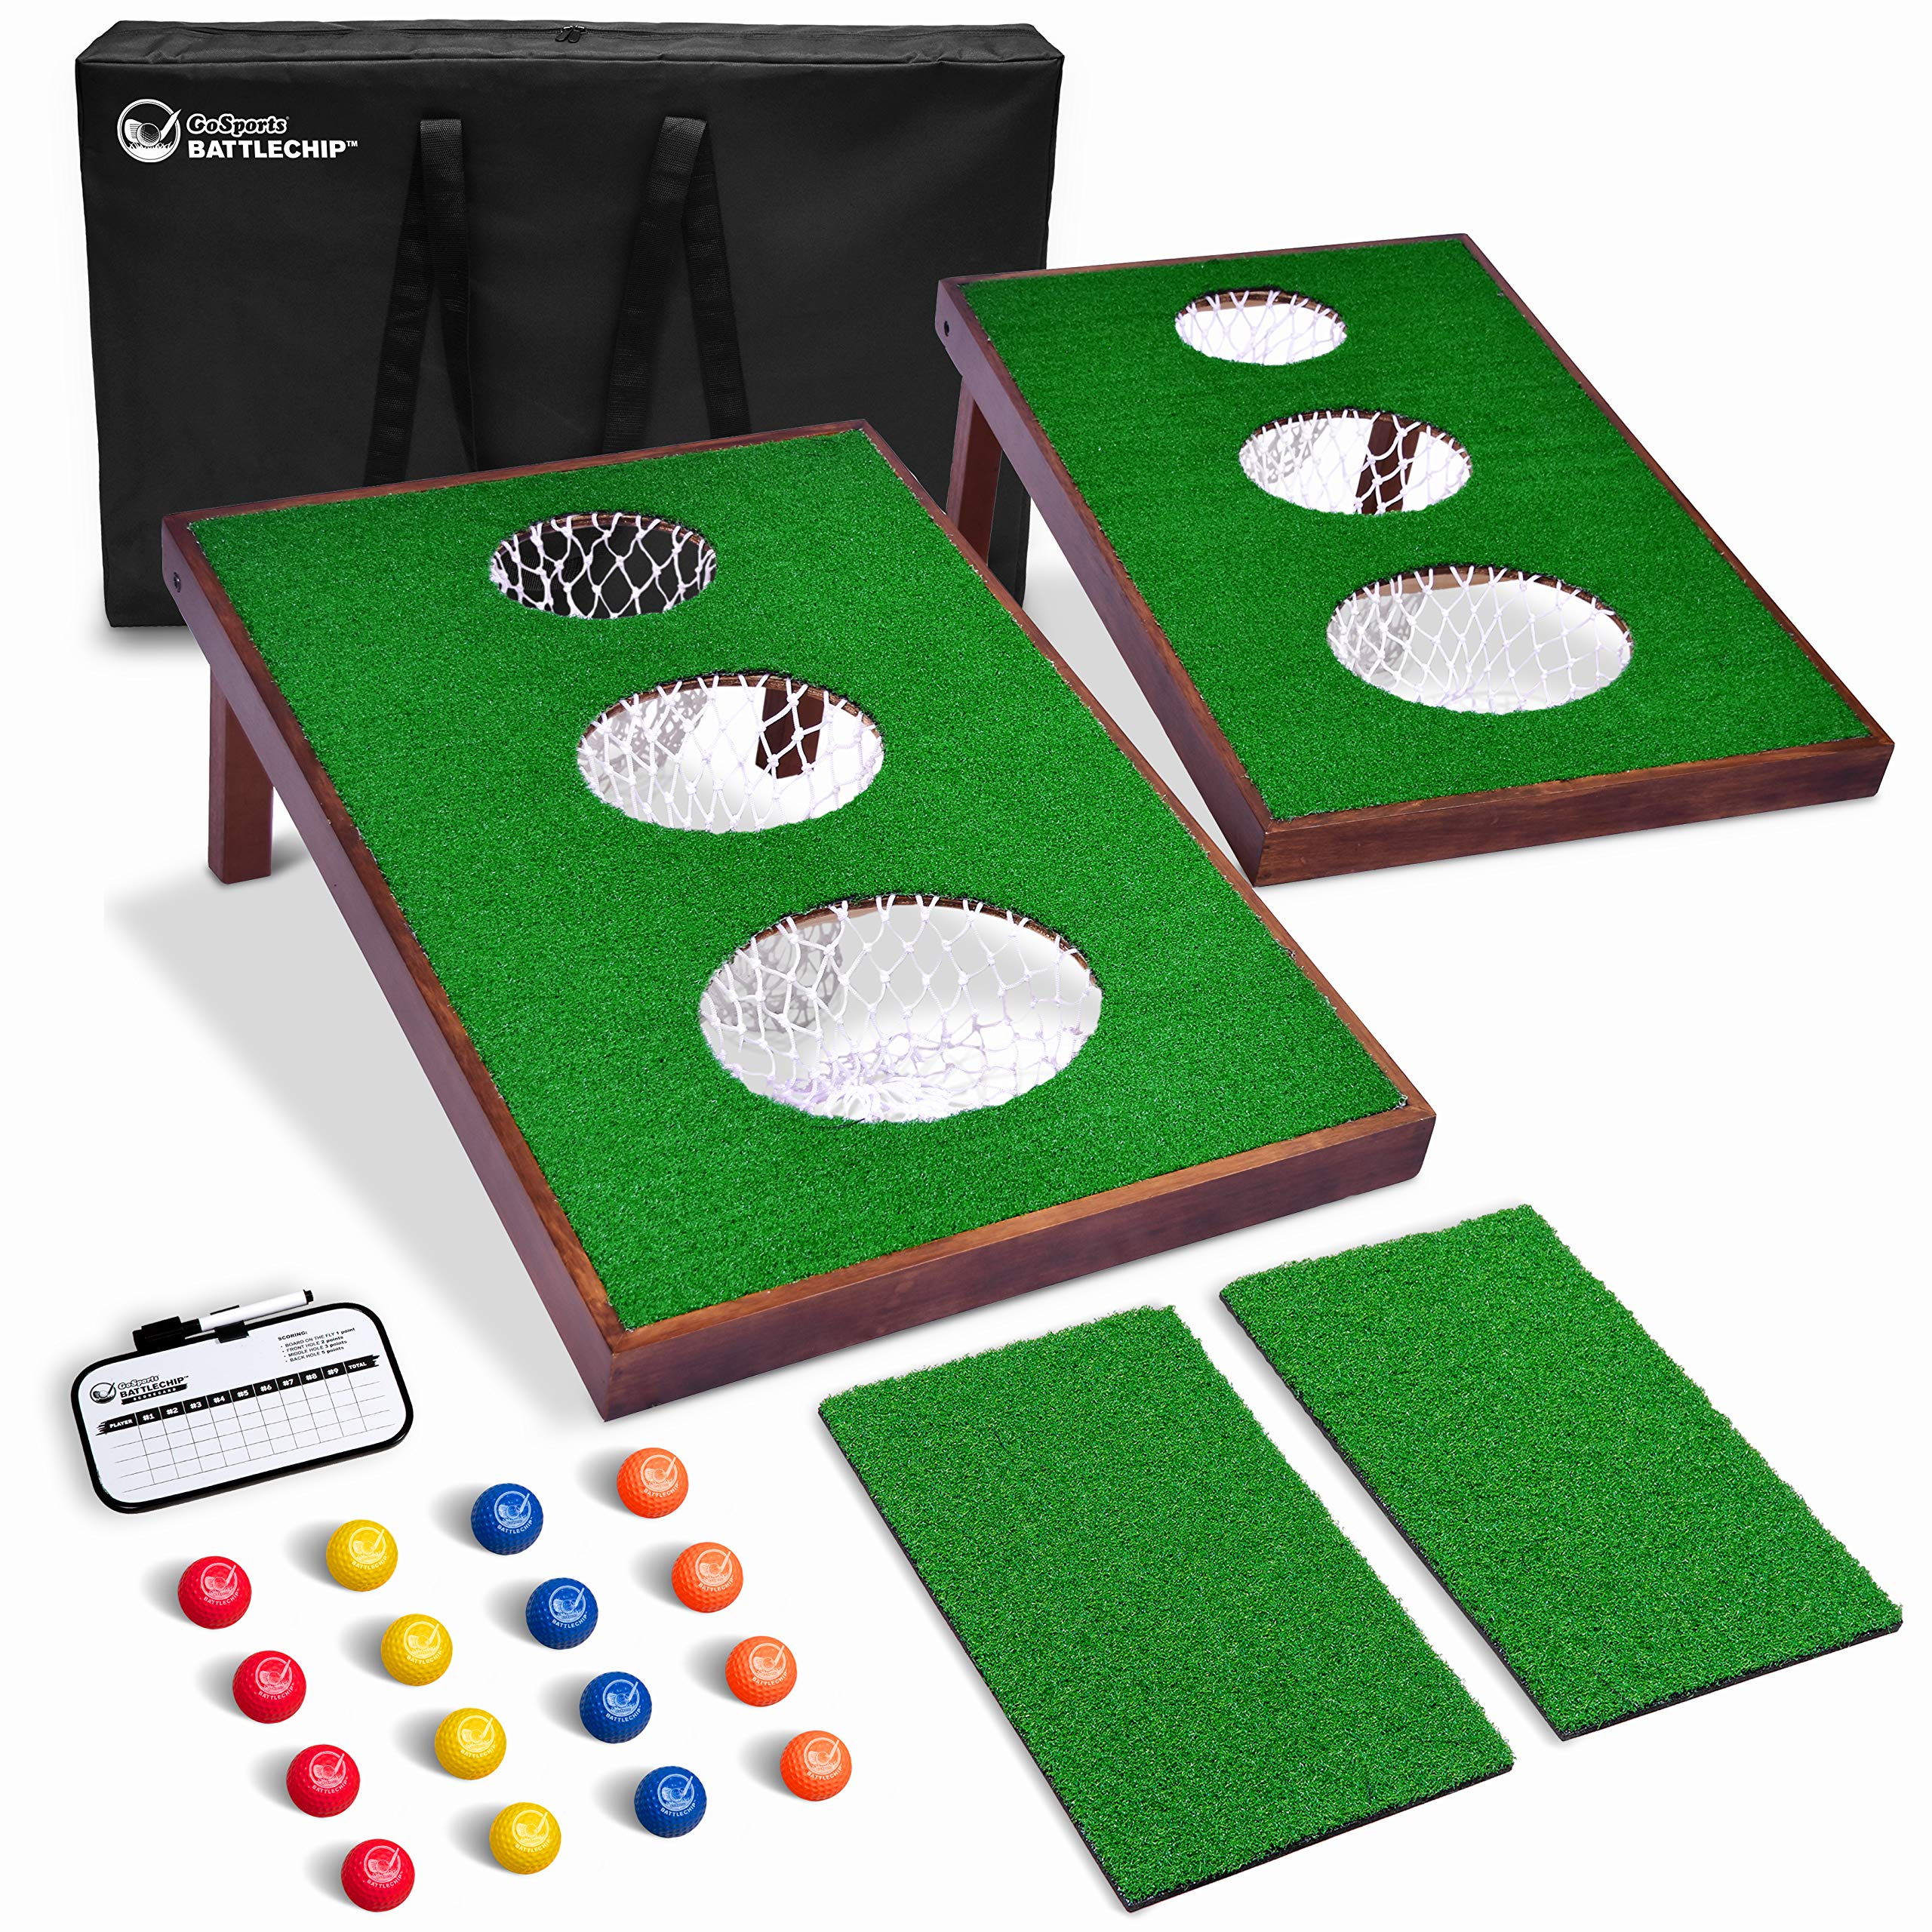 GoSports BattleChip Versus Golf Game | Includes Two 3' x 2' Targets, 16 Foam Balls, 2 Hitting Mats, Scorecard and Carrying Case by GoSports